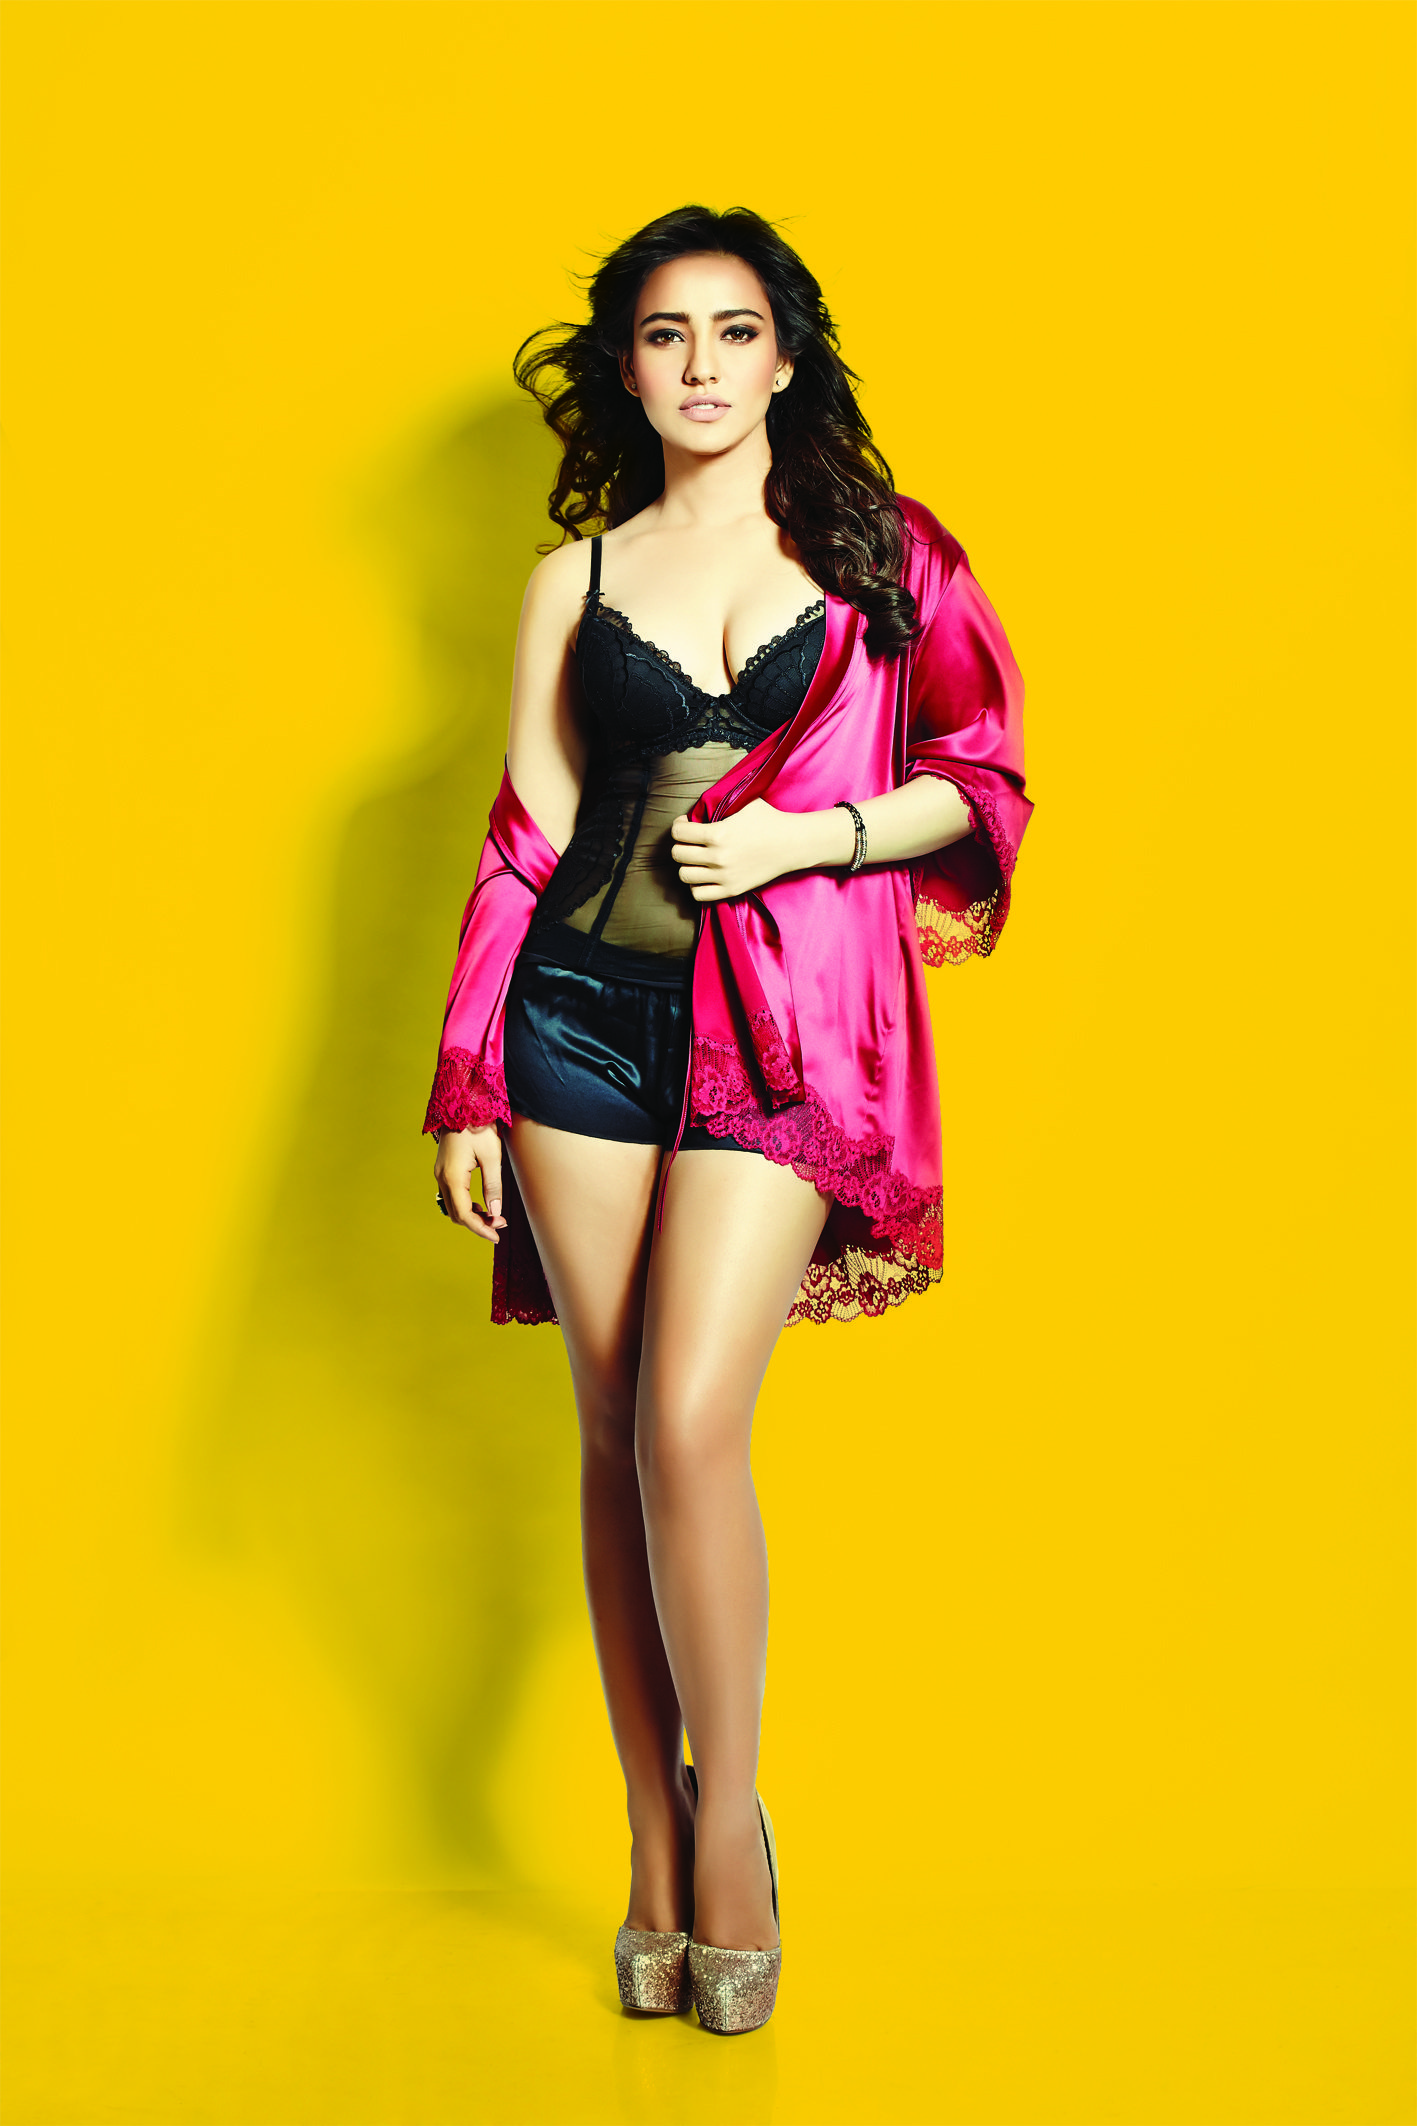 Neha Sharma FHM cover